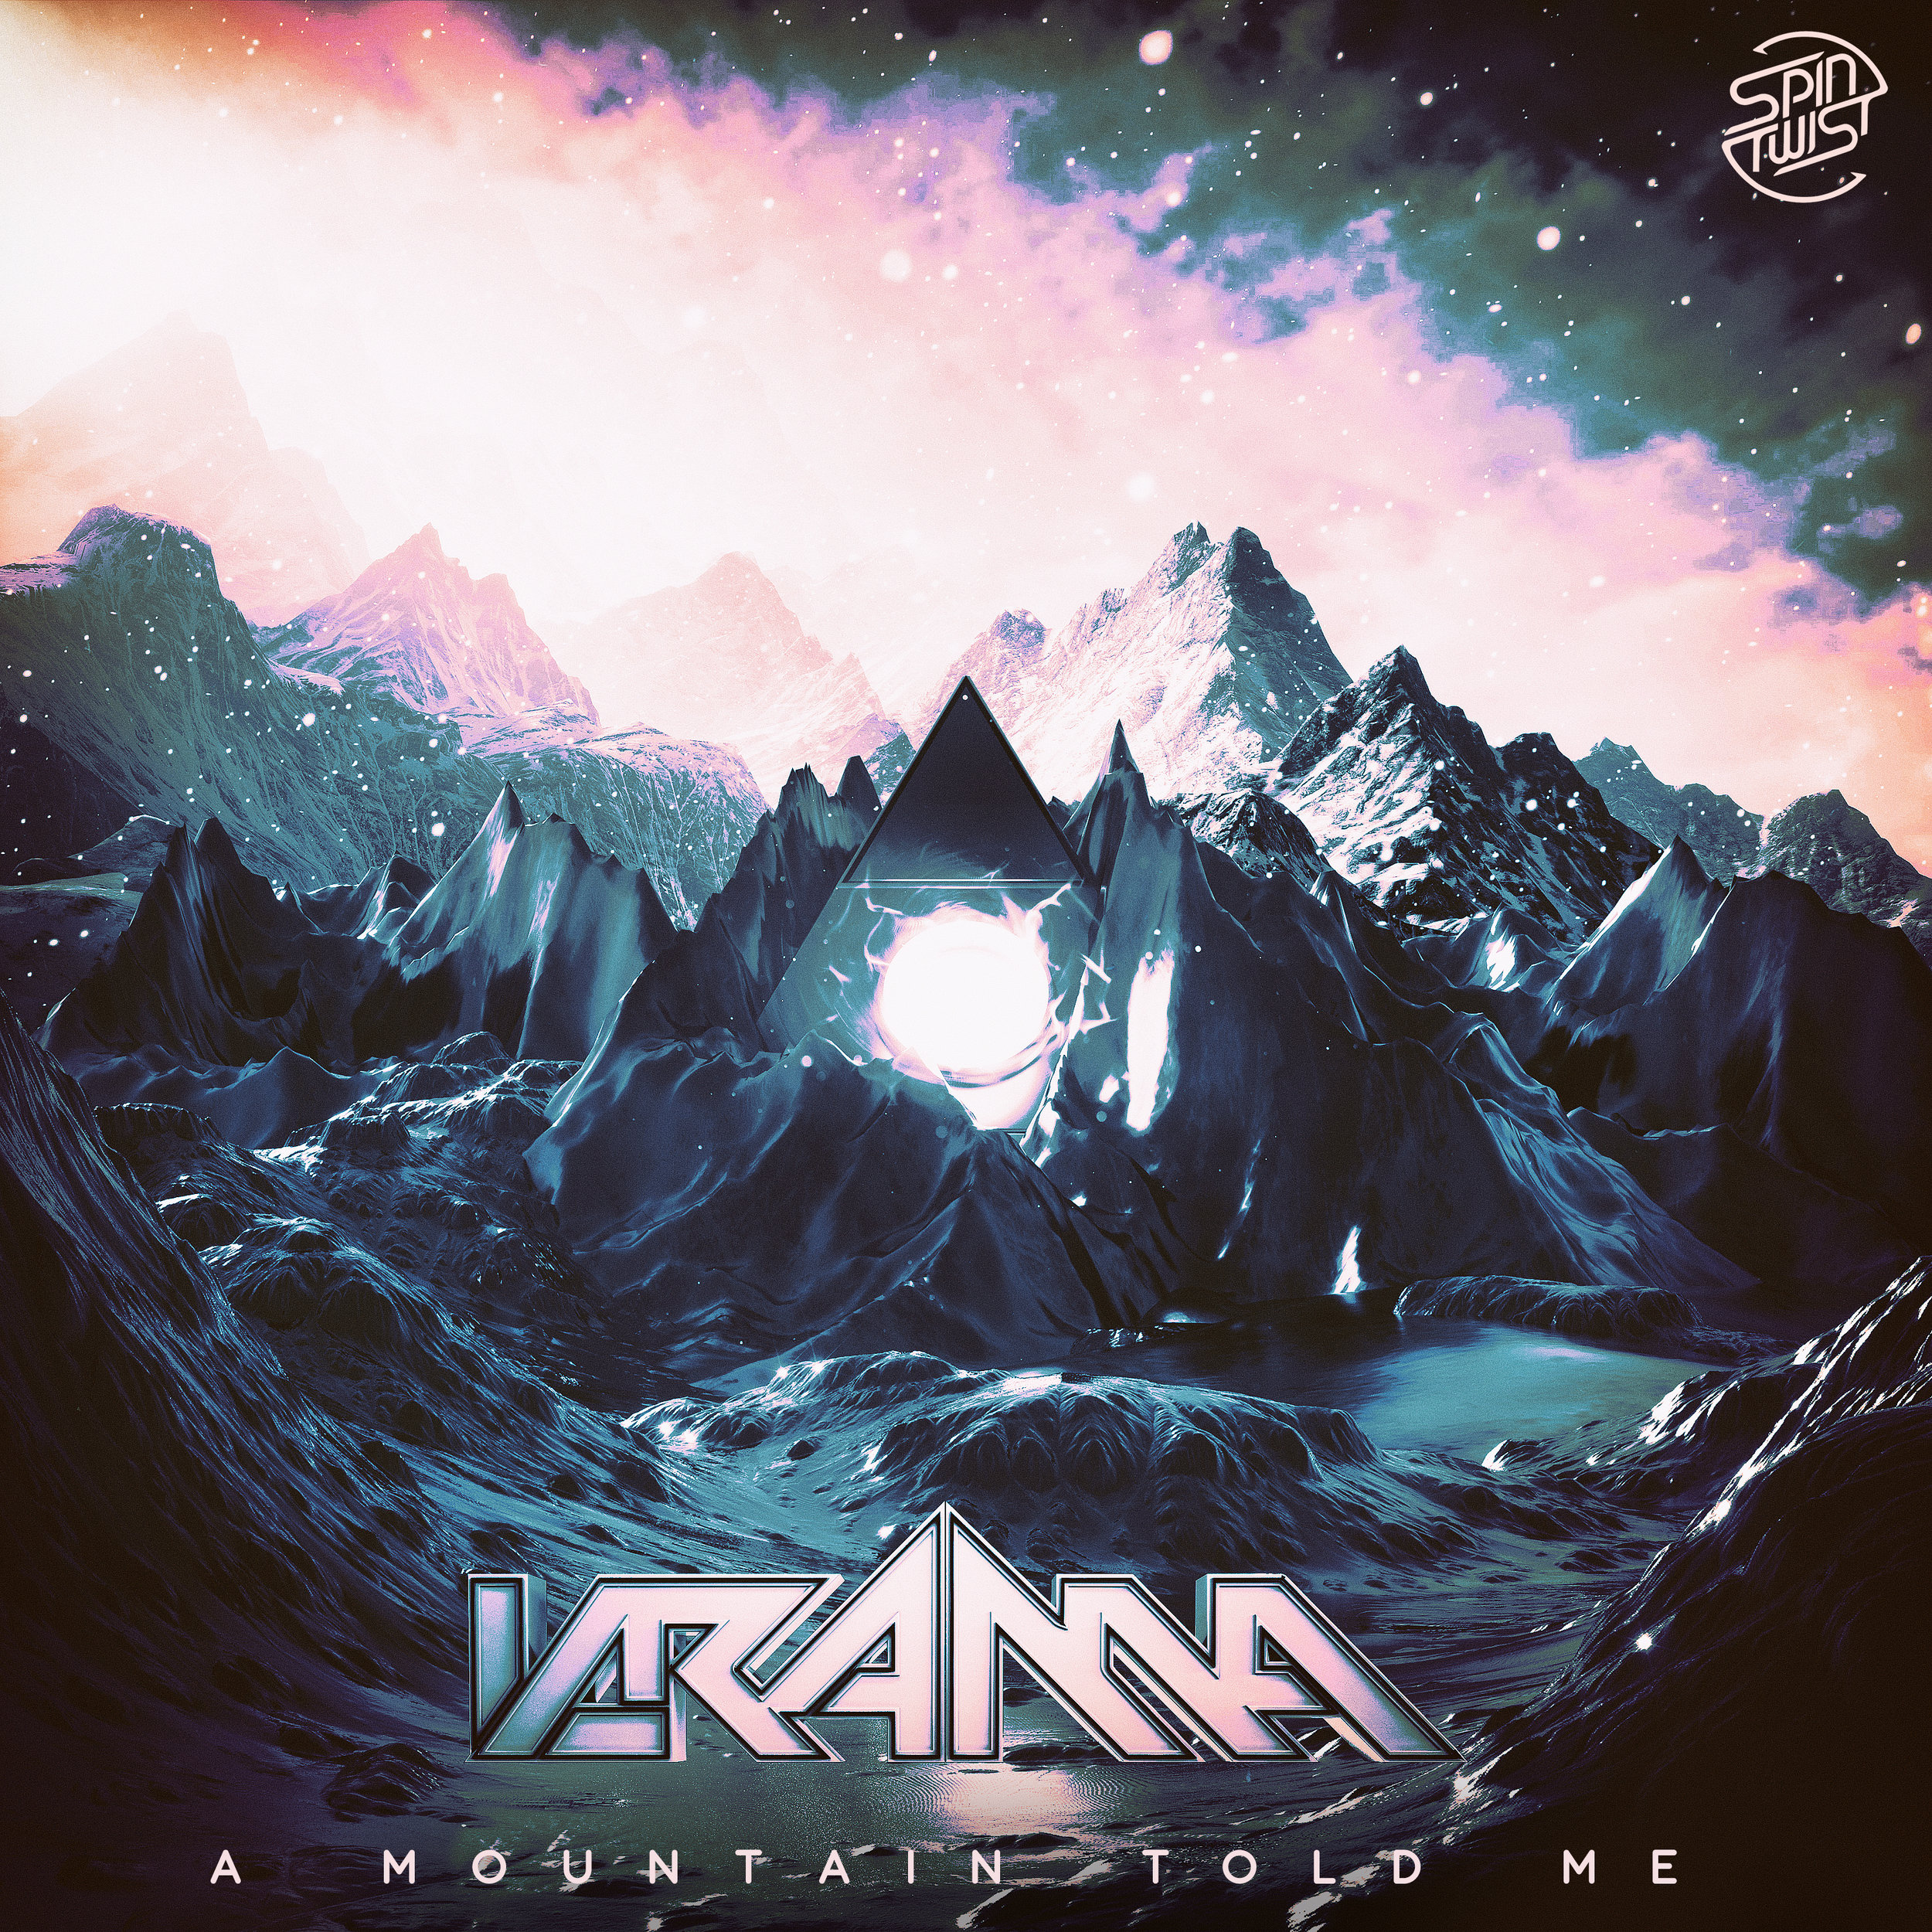 Krama - A Mountain Told Me (Cover).jpg